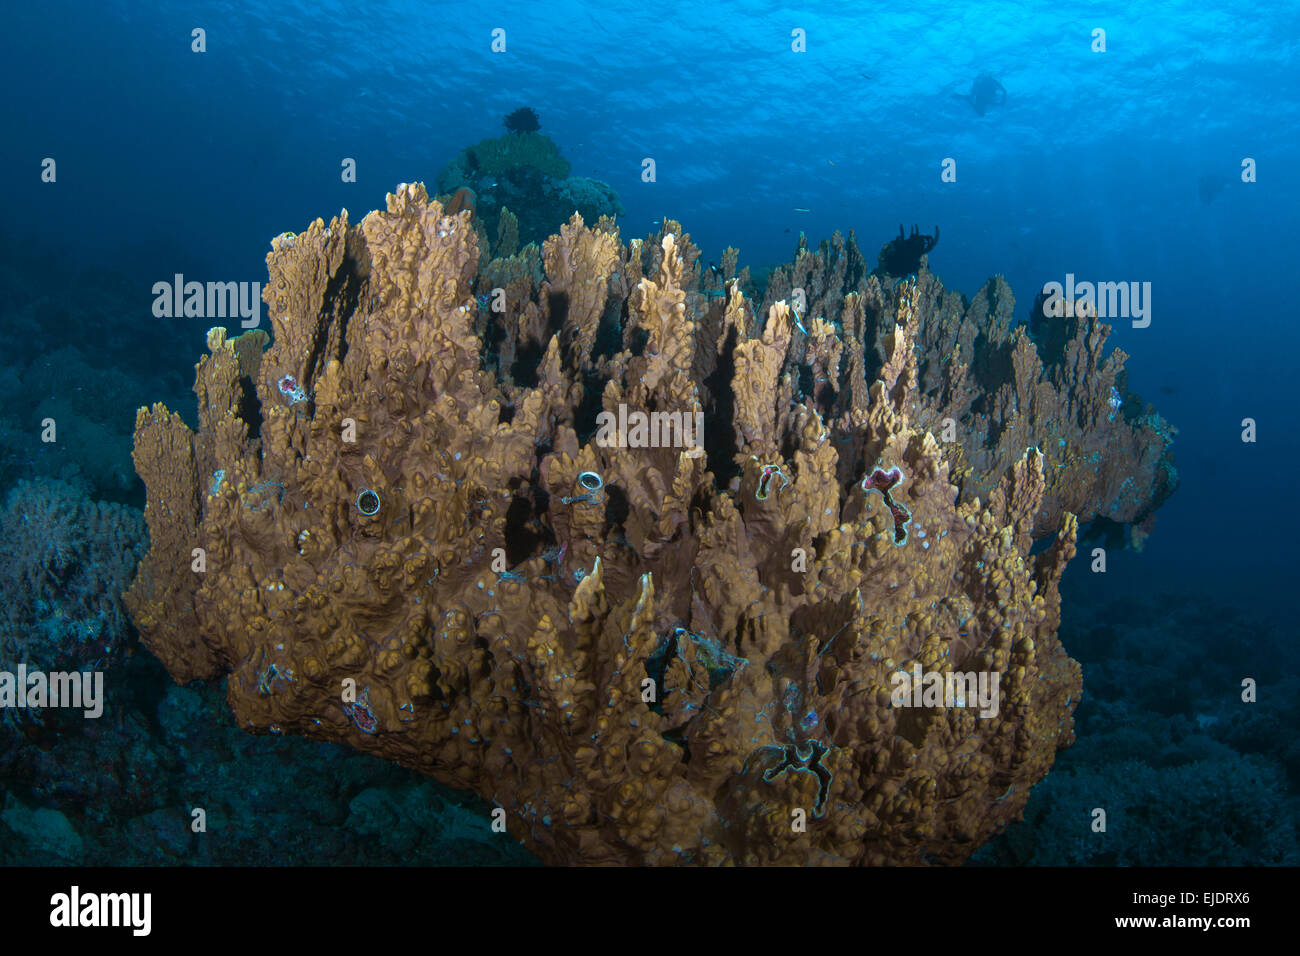 Columnar hard coral colony (Montipora sp.) appears to float above sea floor, with divers silhouetted in blue water - Stock Image